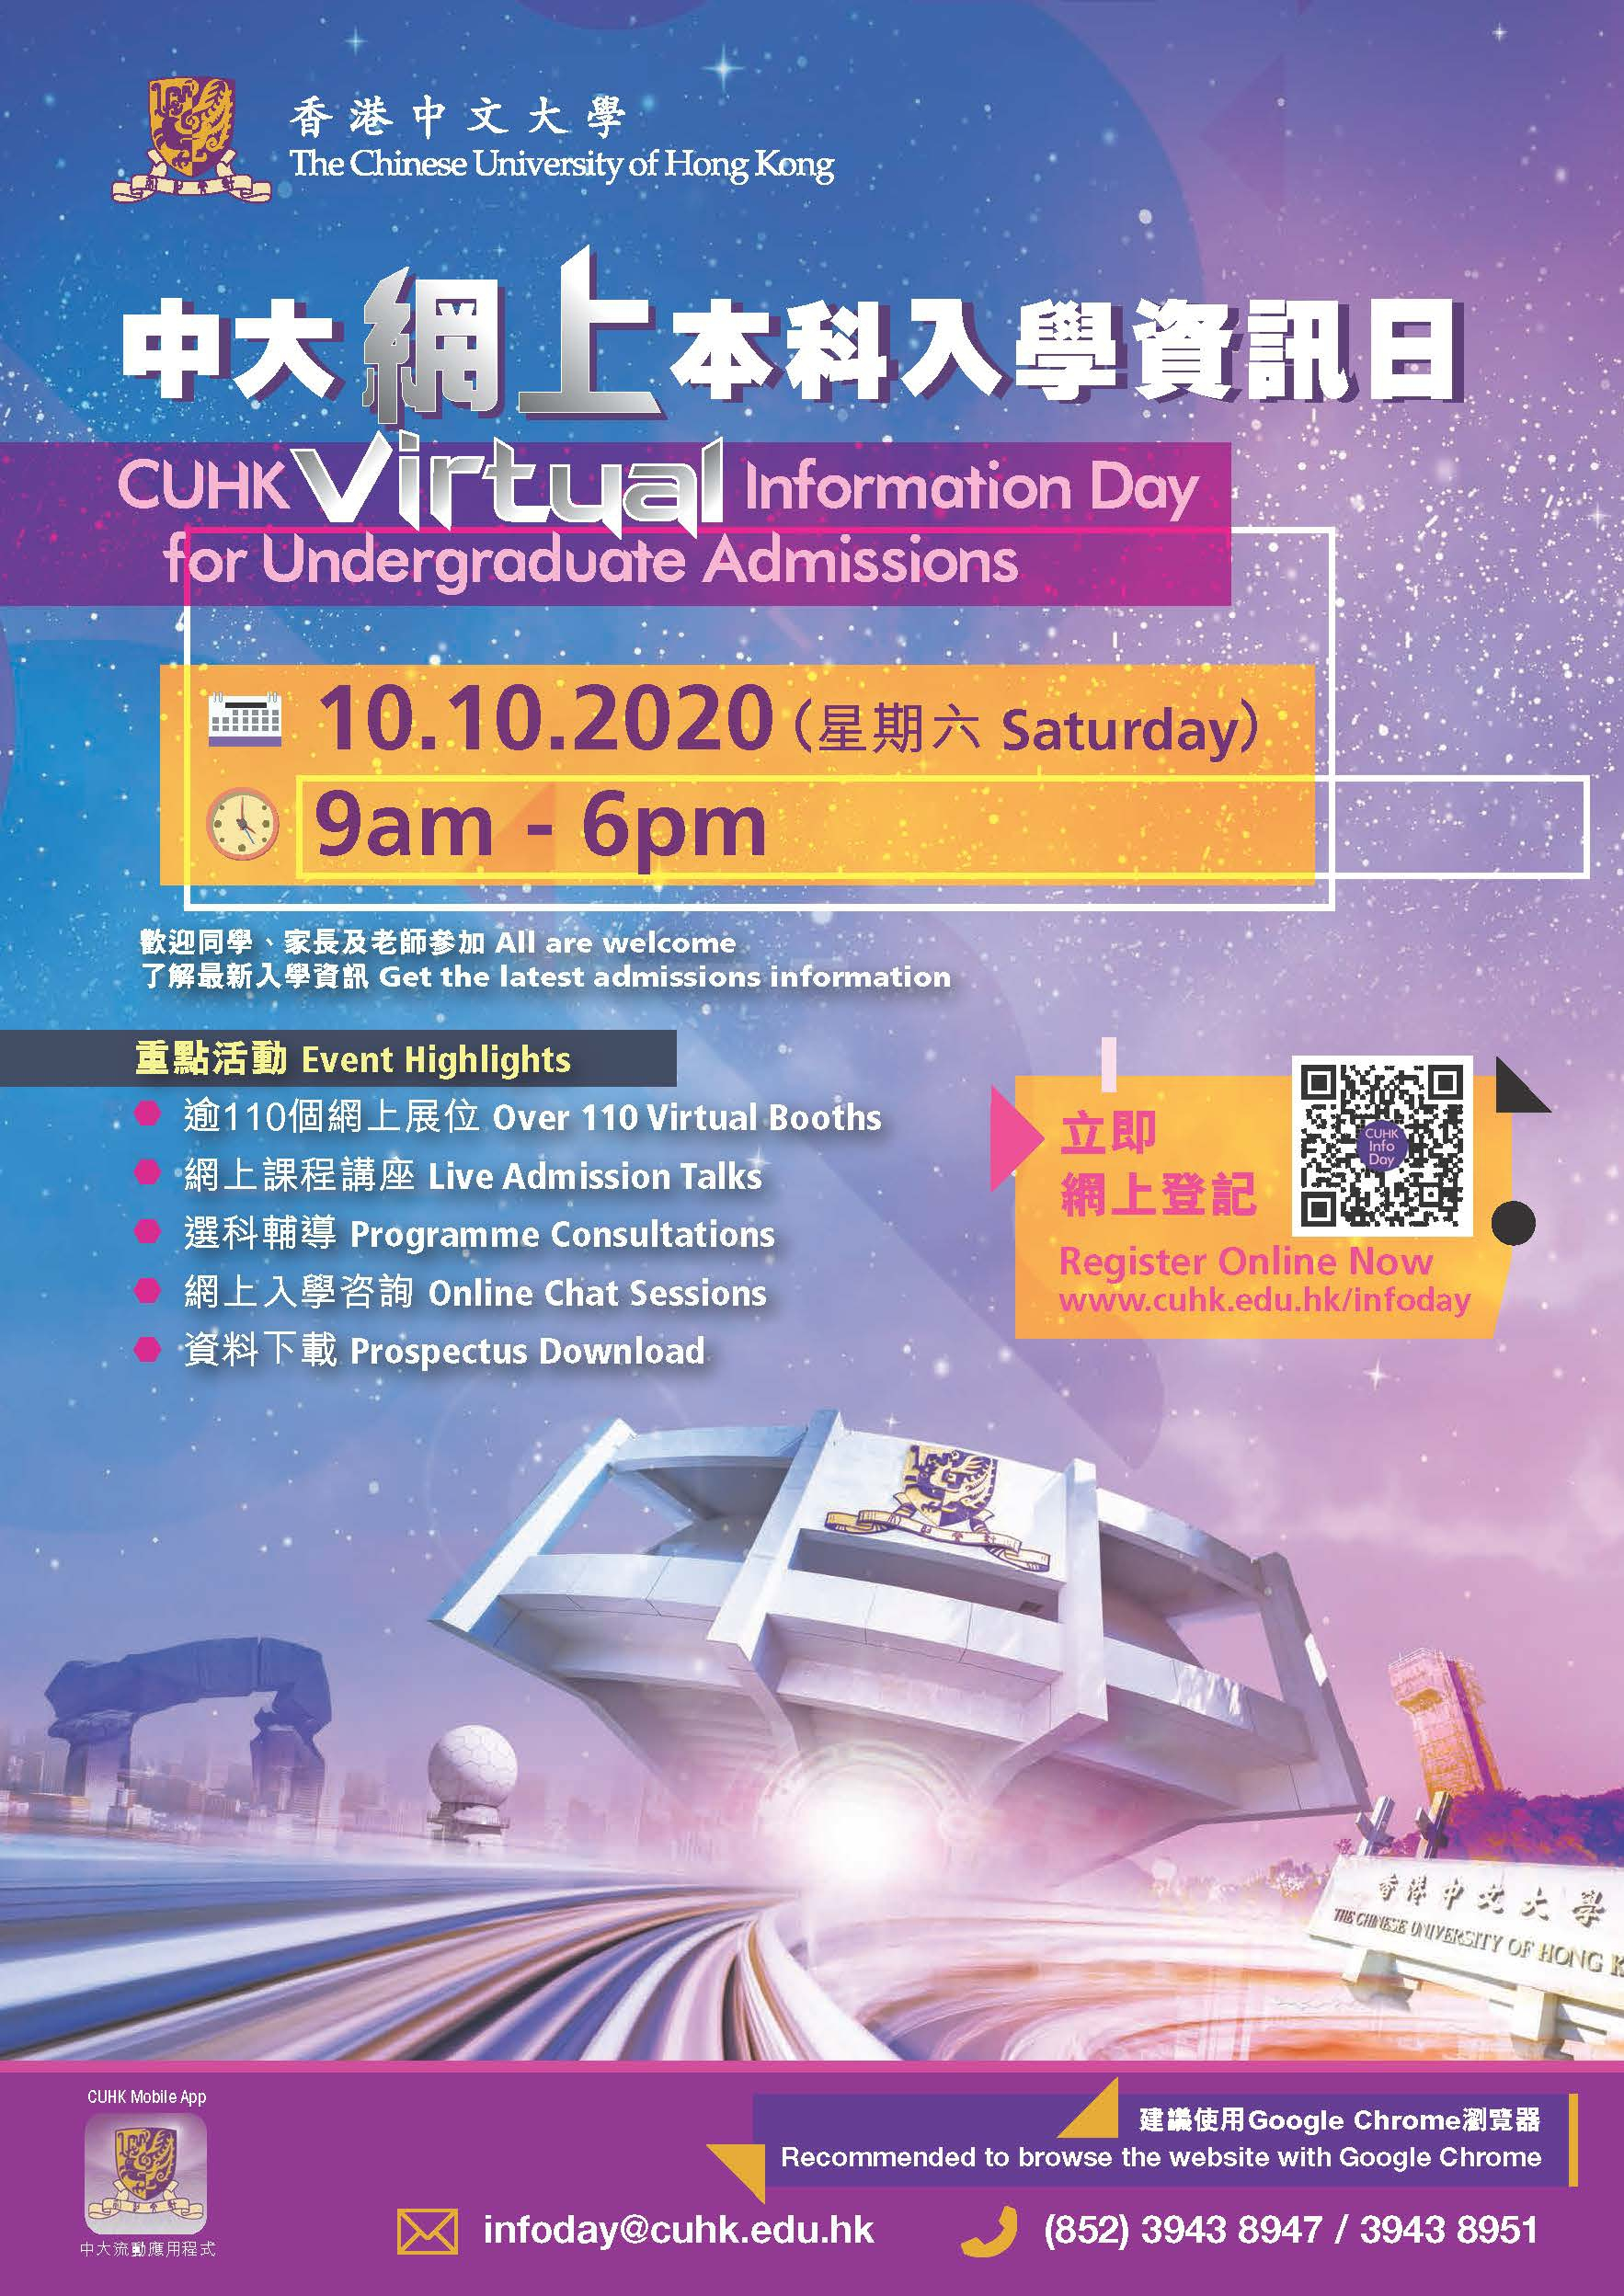 CUHK Virtual Information Day for Undergraduate Admissions